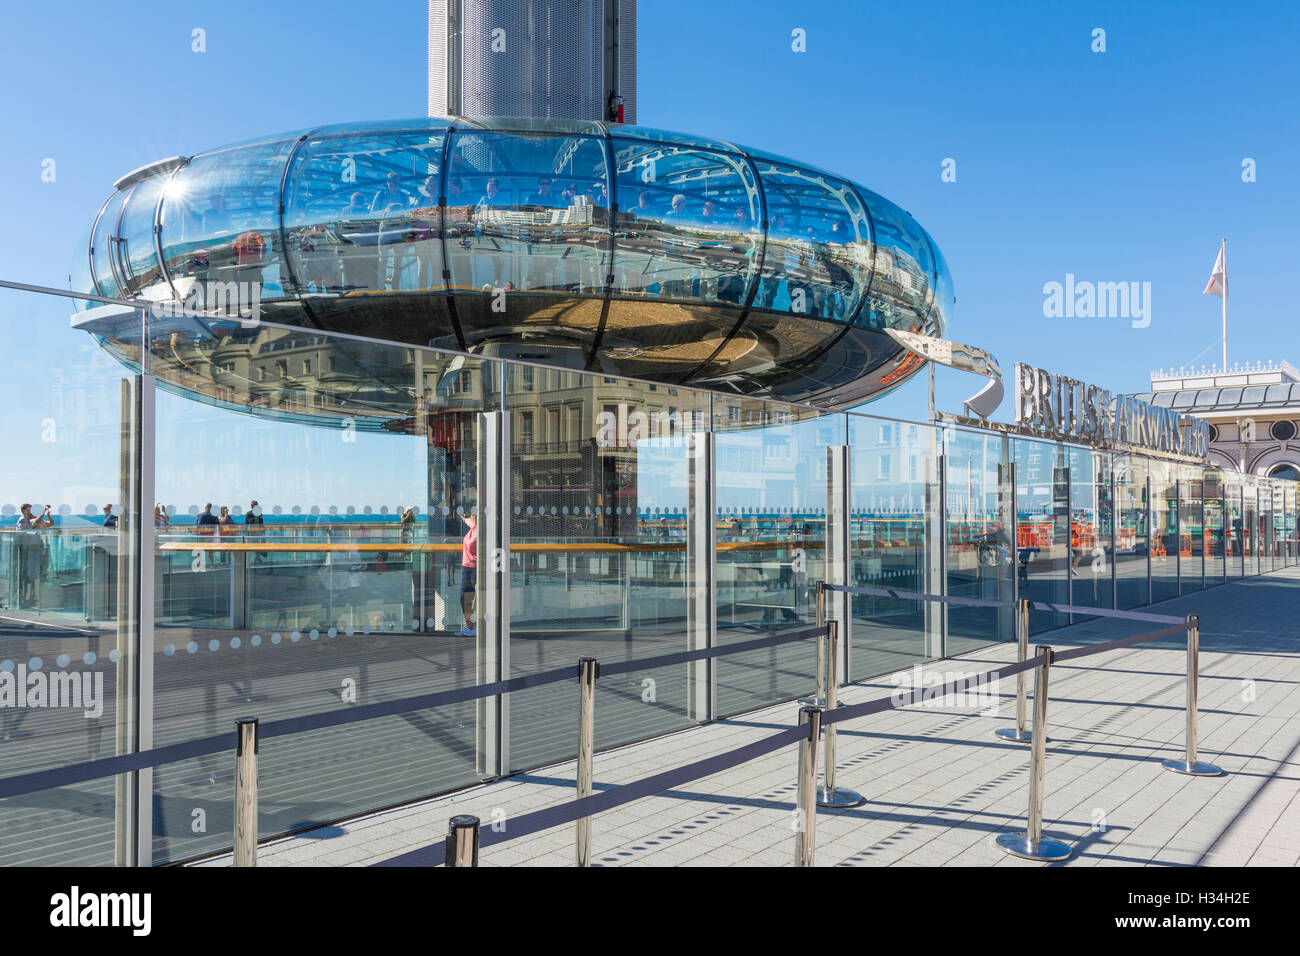 i360. British Airways i360 Observation Tower at ground level in Brighton, East Sussex, England, UK. - Stock Image